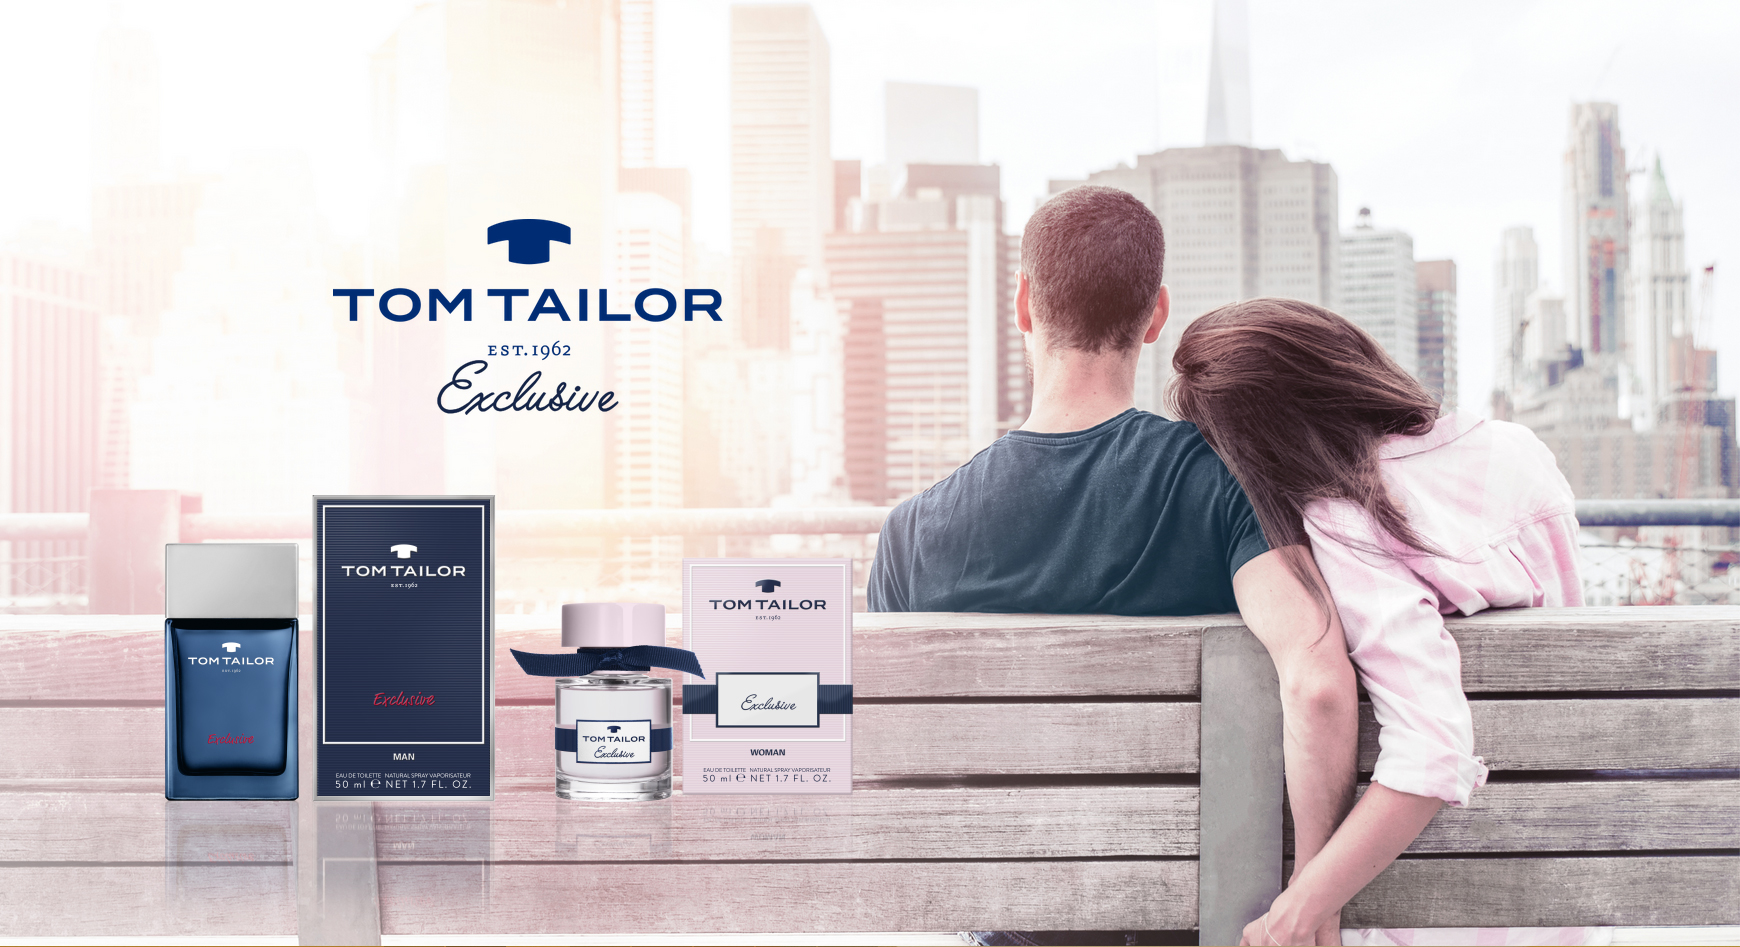 Tomt Ailor Tom Tailor Exclusive Man Tom Tailor Cologne A New